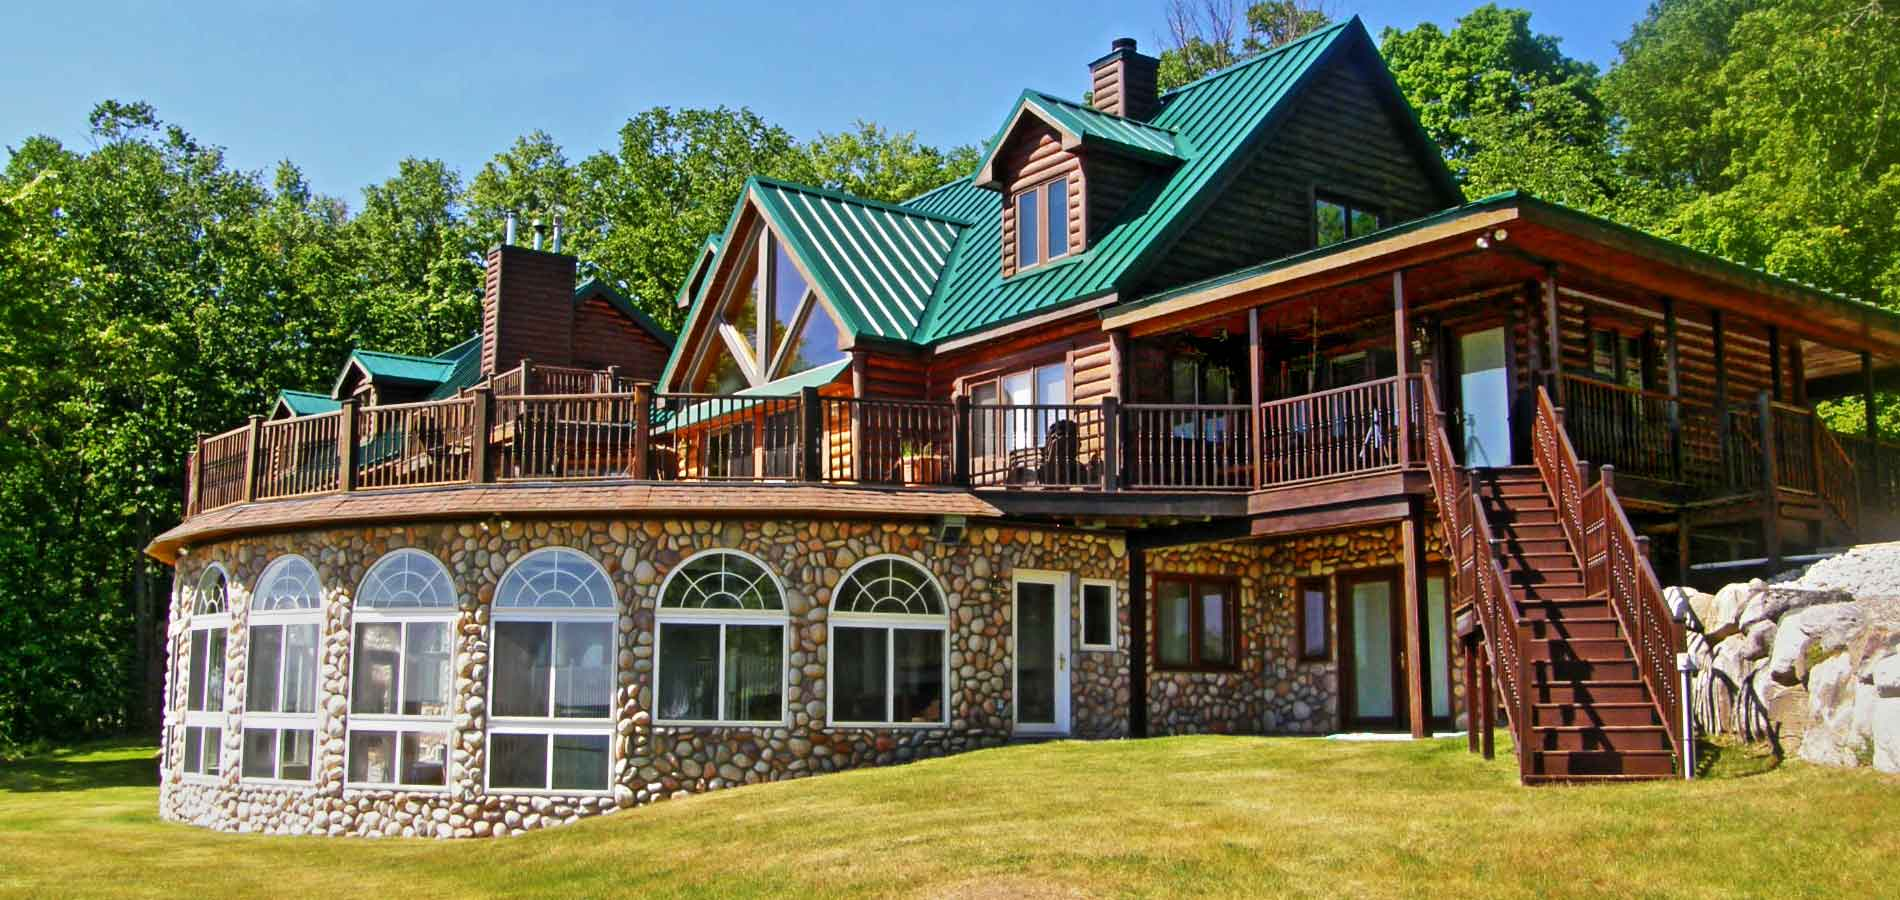 Pet Friendly Vacation Homes Rent